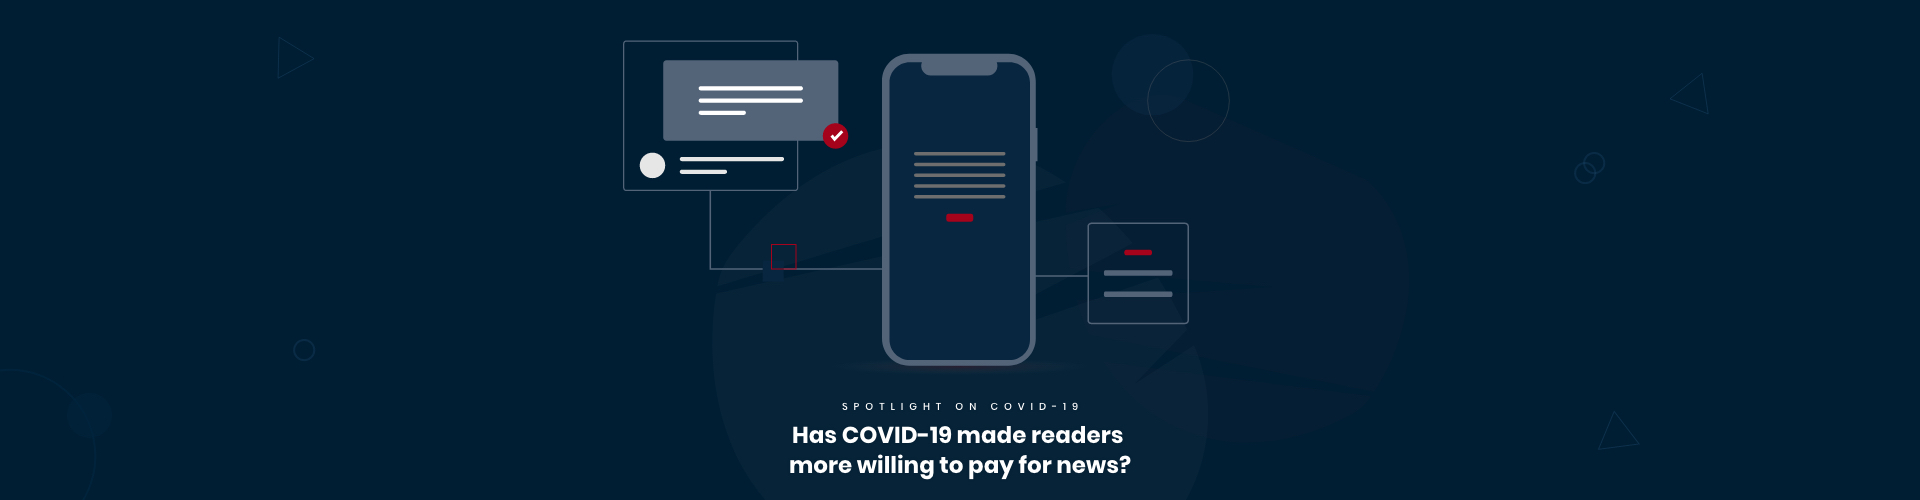 Header image of Has COVID-19 made readers more willing to pay for news?